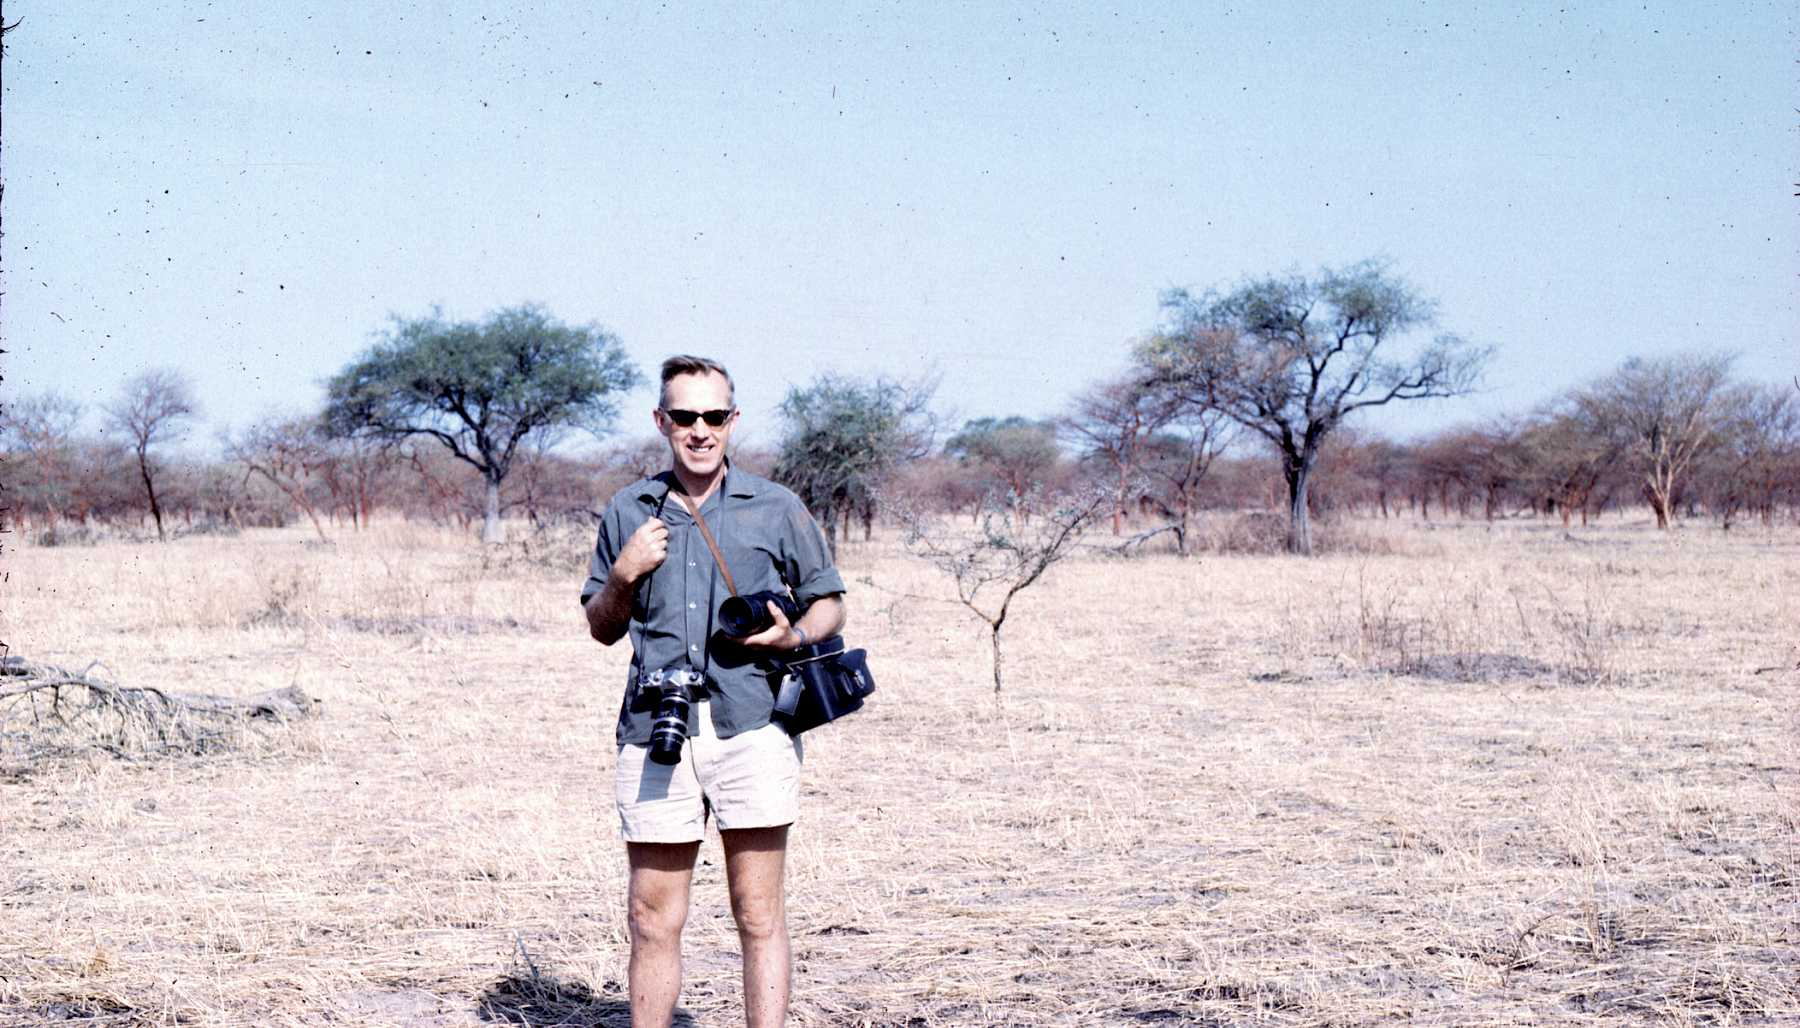 John Fosse in Waza park reserve in North Cameroon.